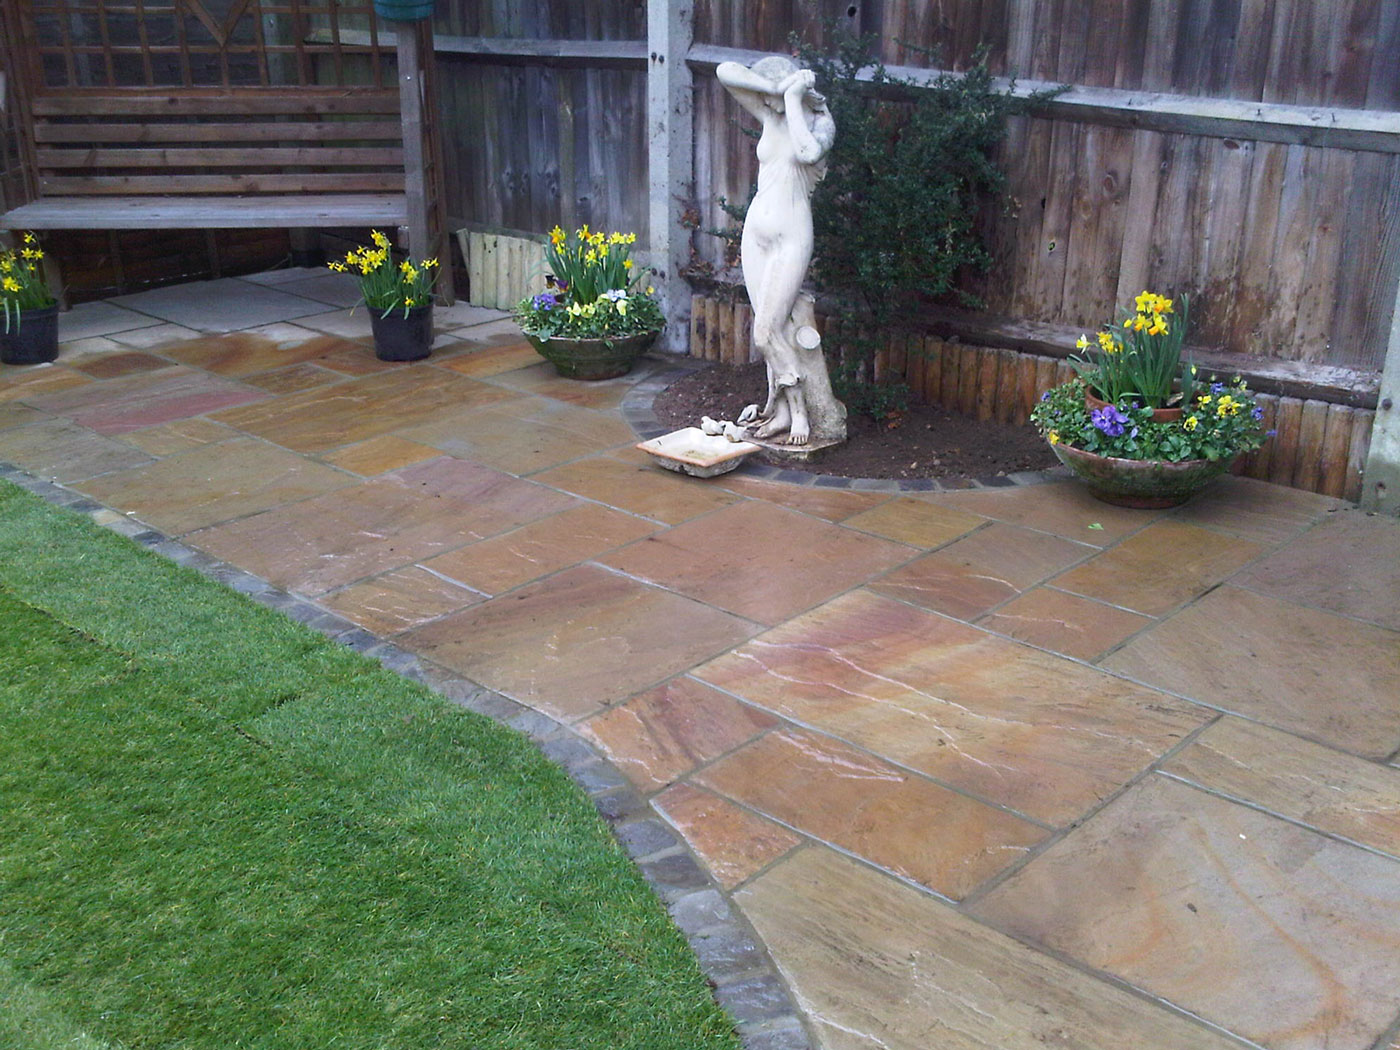 Paving in a garden area